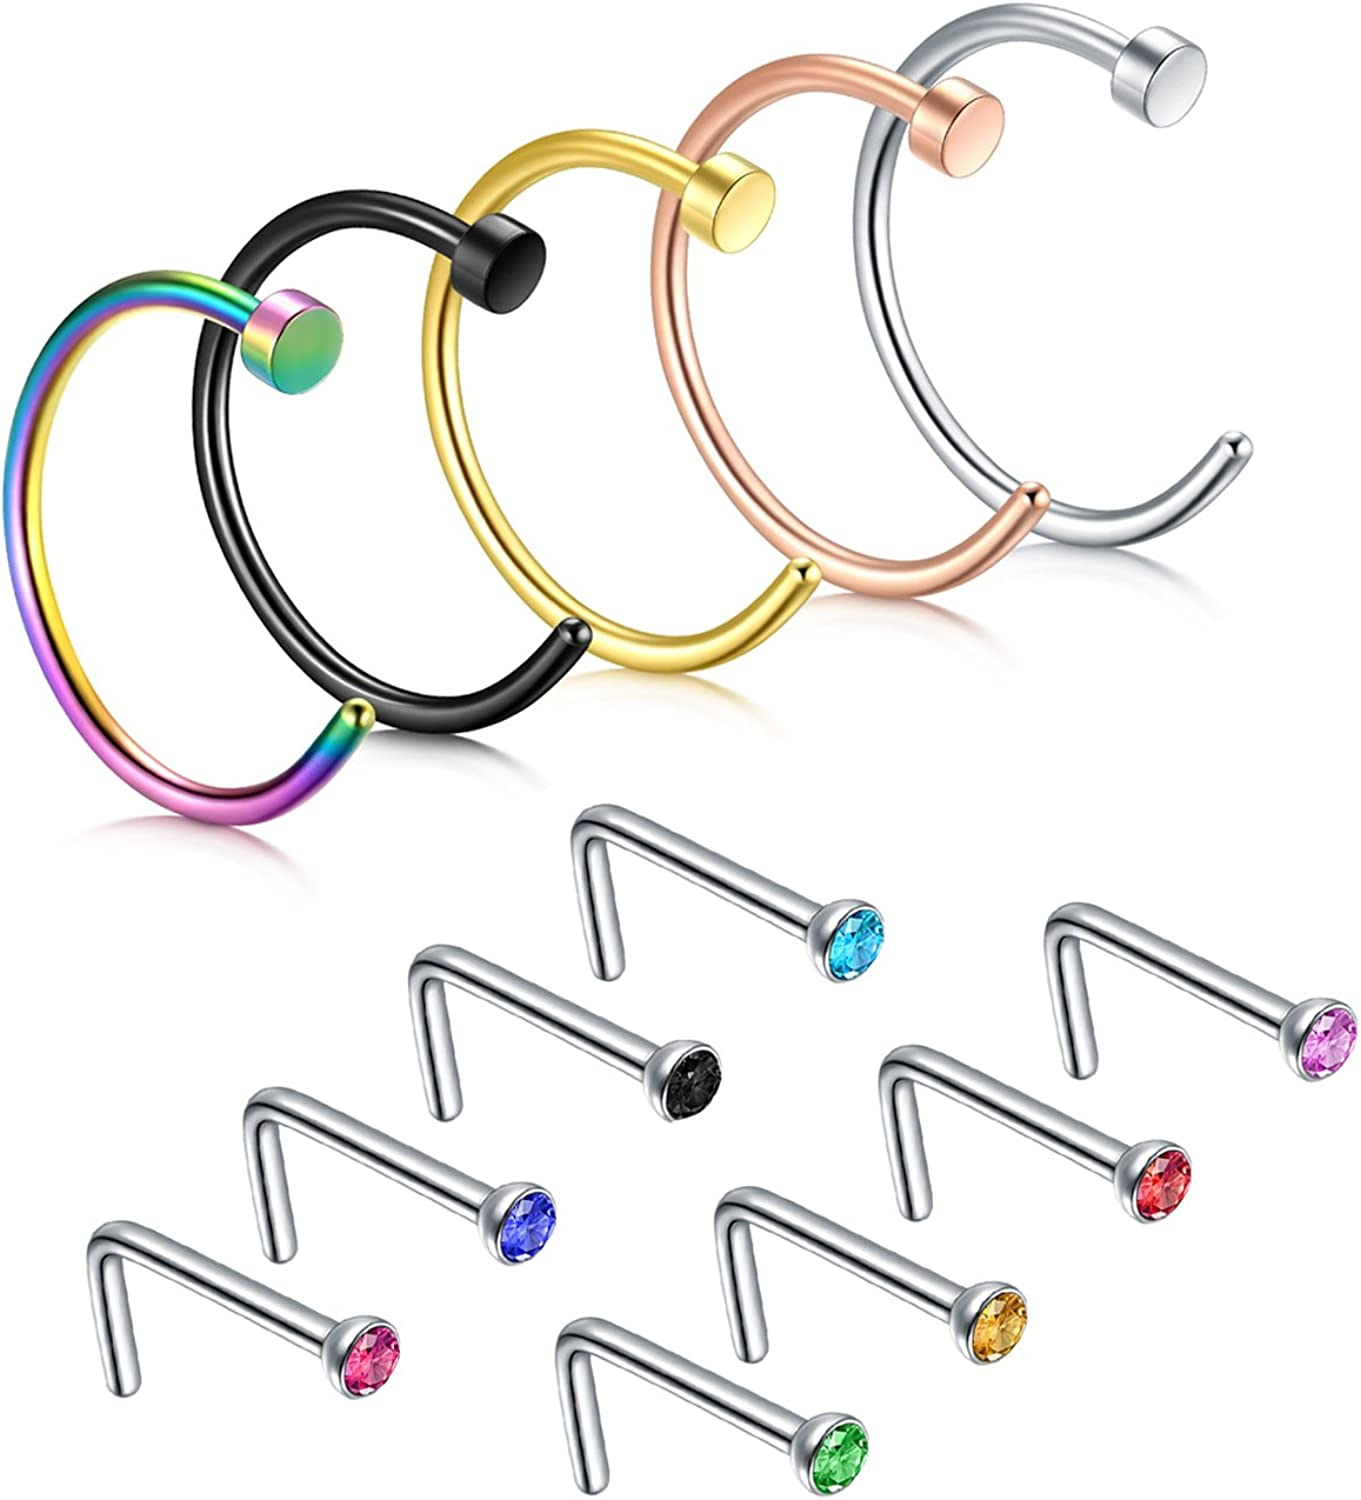 JFORYOU Nose Rings Nose Studs Nose Screw 22G 316L Surgical Steel